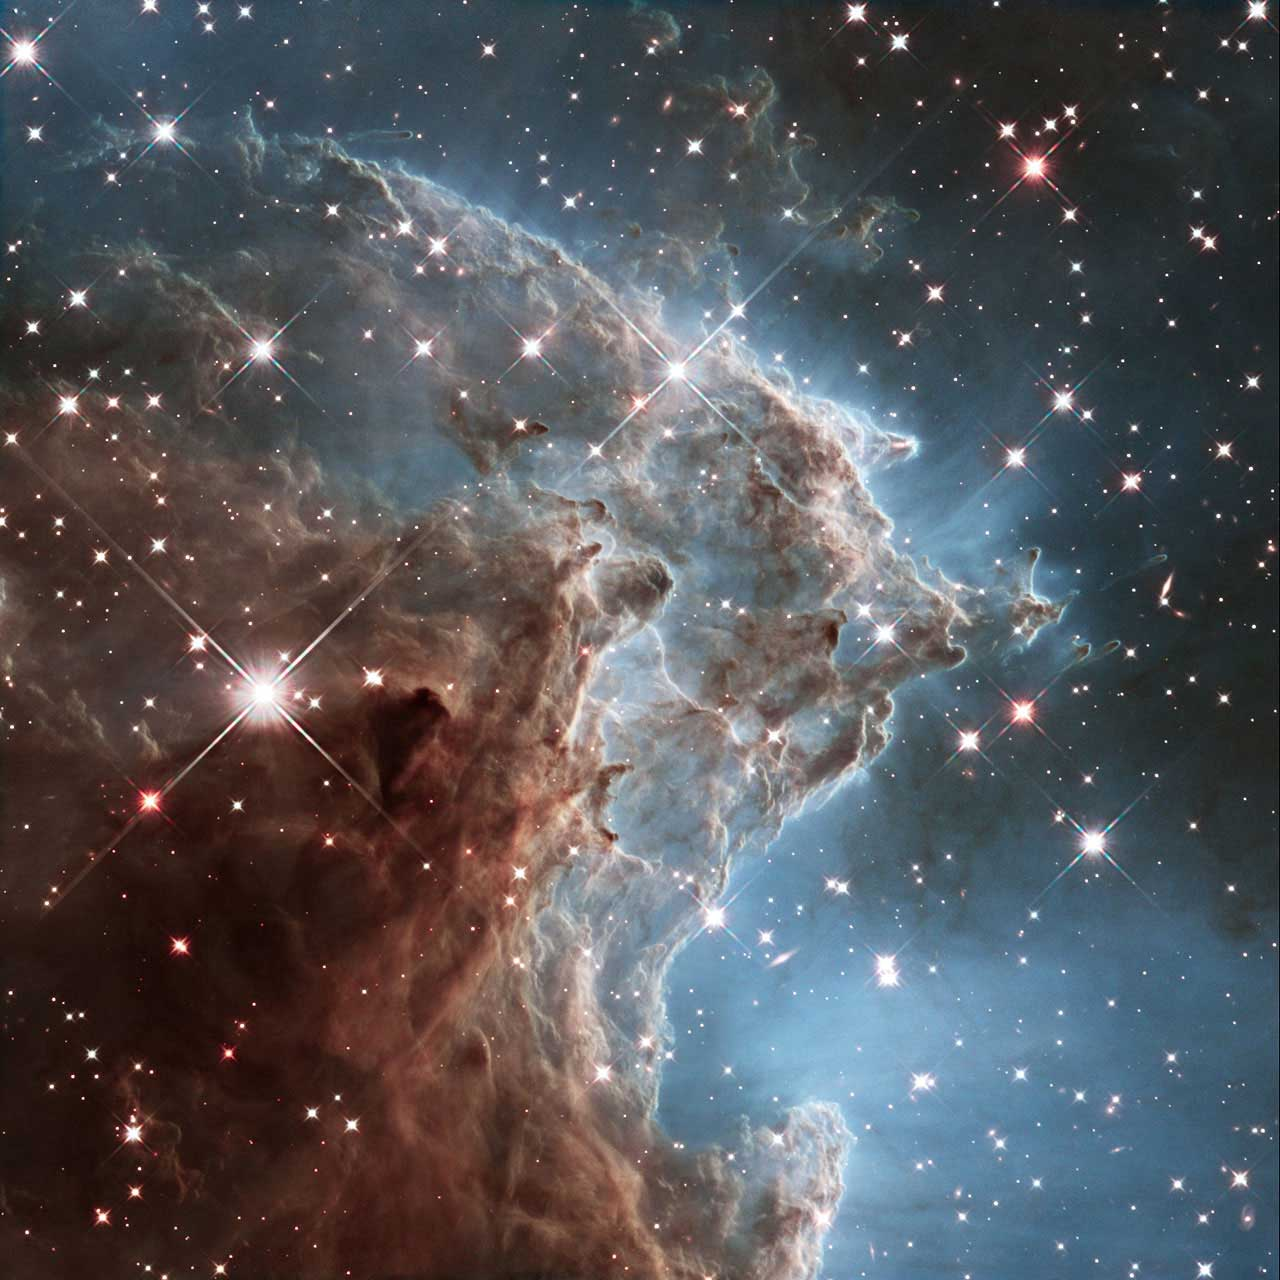 Monkey Head Nebula:                                                              Also known as NGC 2174, the nebula lies about 6400 light-years away in the constellation of Orion (The Hunter). Hubble previously viewed this part of the sky back in 2011 — the colorful region is filled with young stars embedded within bright wisps of cosmic gas and dust. This portion of the Monkey Head Nebula was imaged in infrared using Hubble's Wide Field Camera 3.                                                              Image released on March 17, 2014